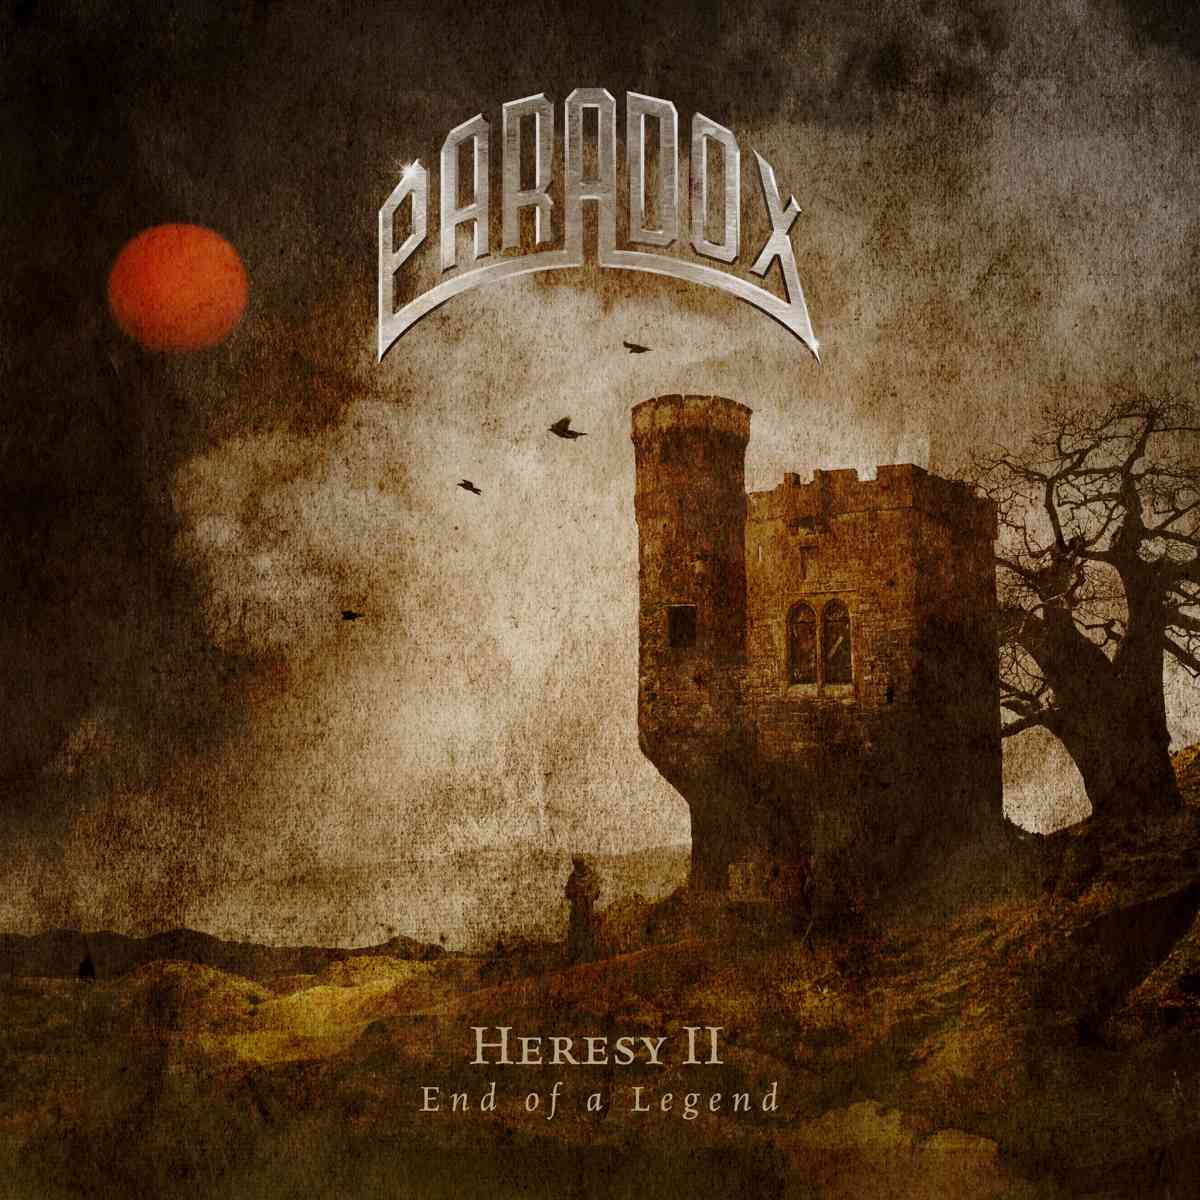 paradox - Heresy II - End of a Legend - album cover